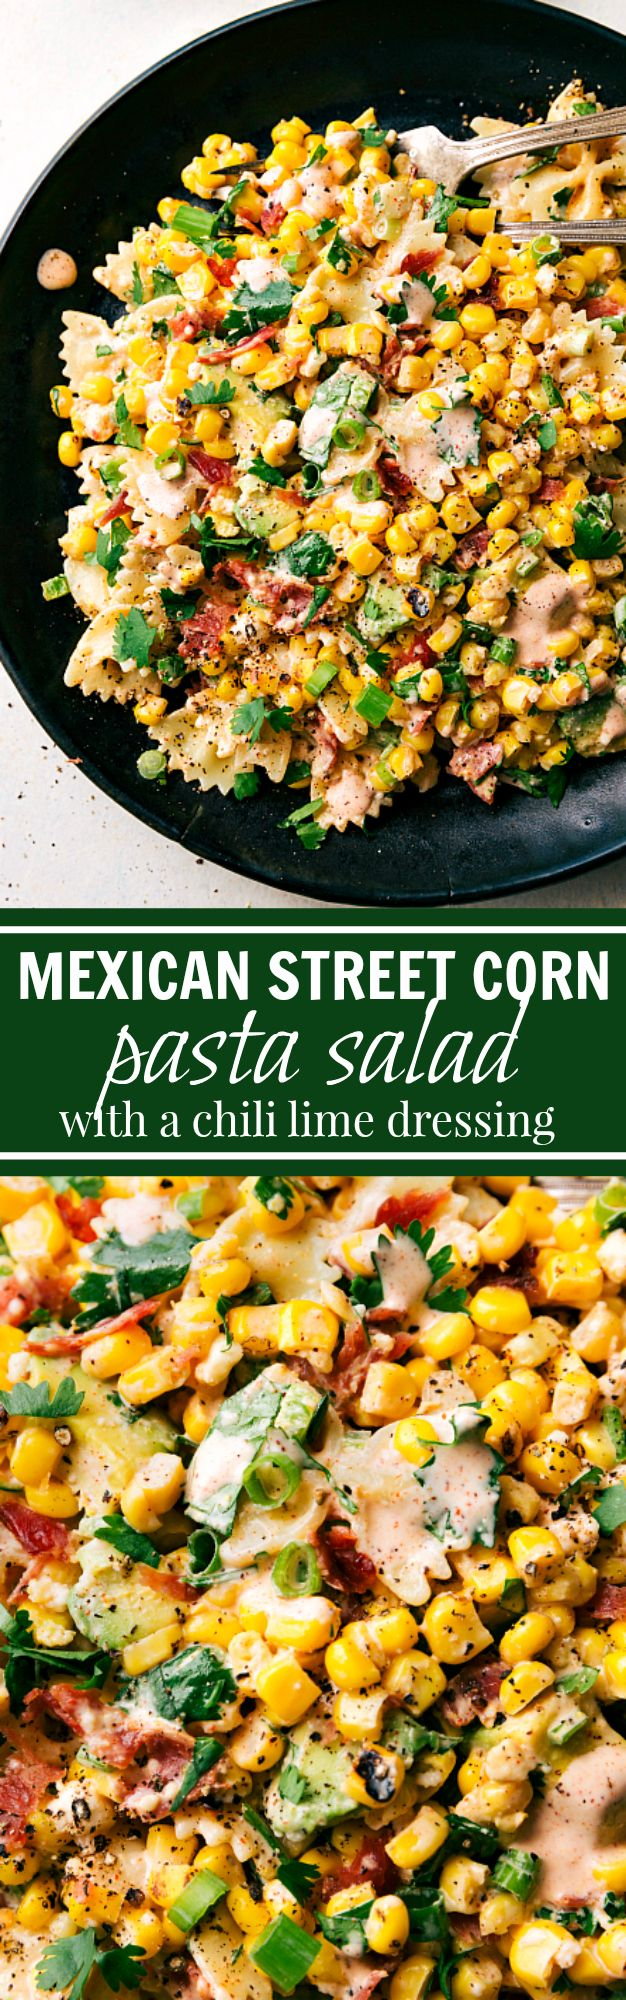 A delicious MEXICAN STREET CORN Pasta salad with tons of veggies, bacon, and a simple creamy CHILI LIME dressing. Recipe via http://chelseasmessyapron.com